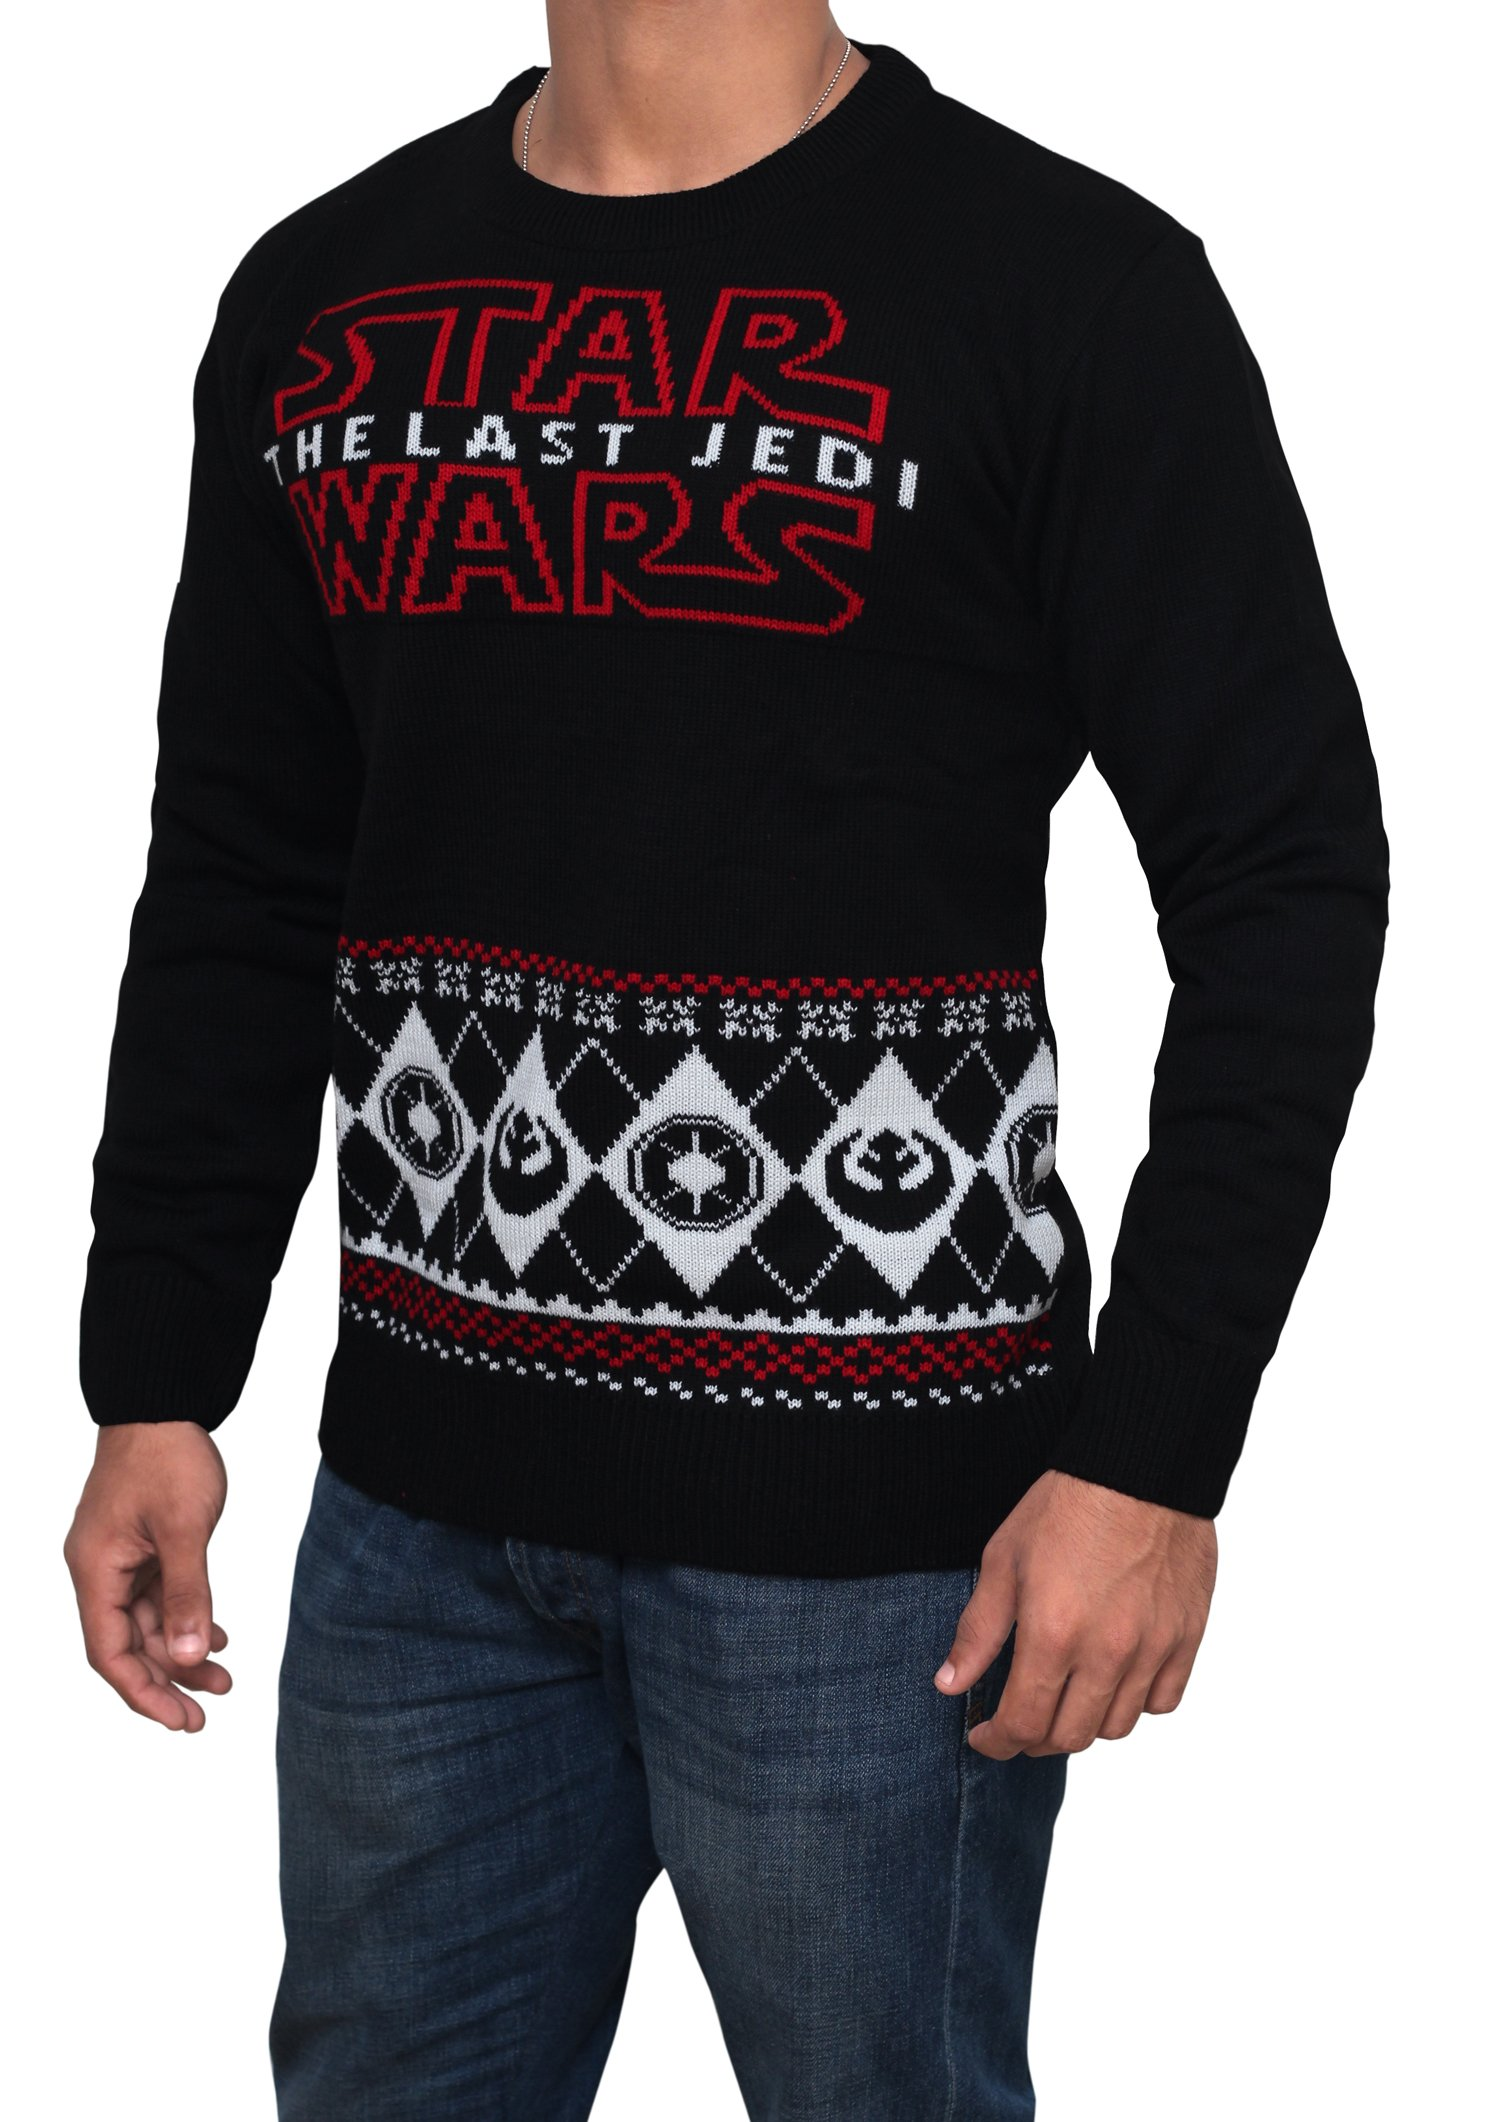 Star Wars Last Jedi Sweater - Star Wars Holiday Sweater by Miracle (Black, Large) by Miracle(Tm) (Image #2)